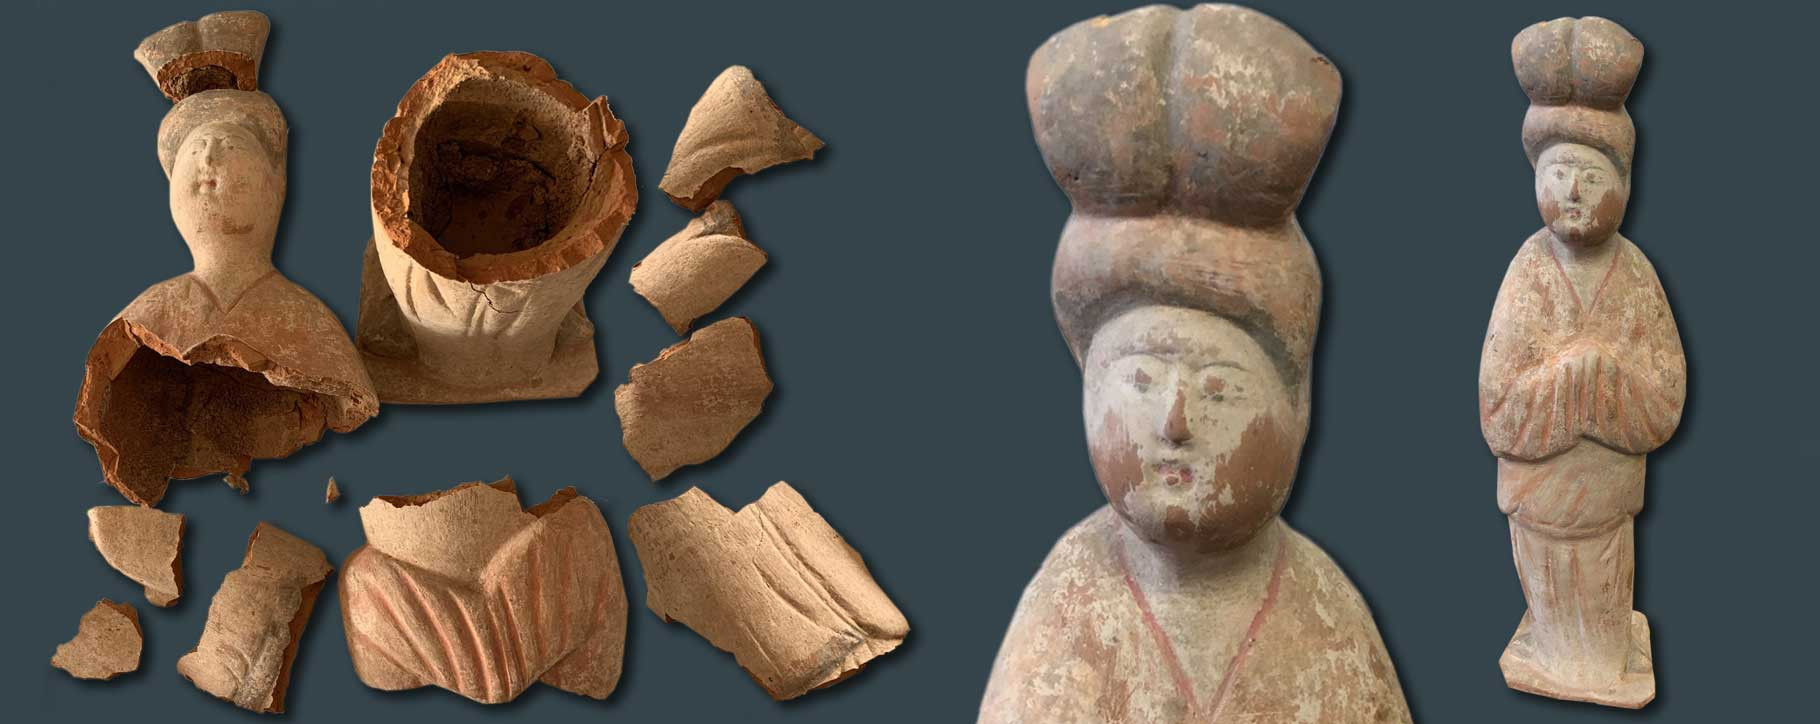 oriental terracotta figure before and after restoration